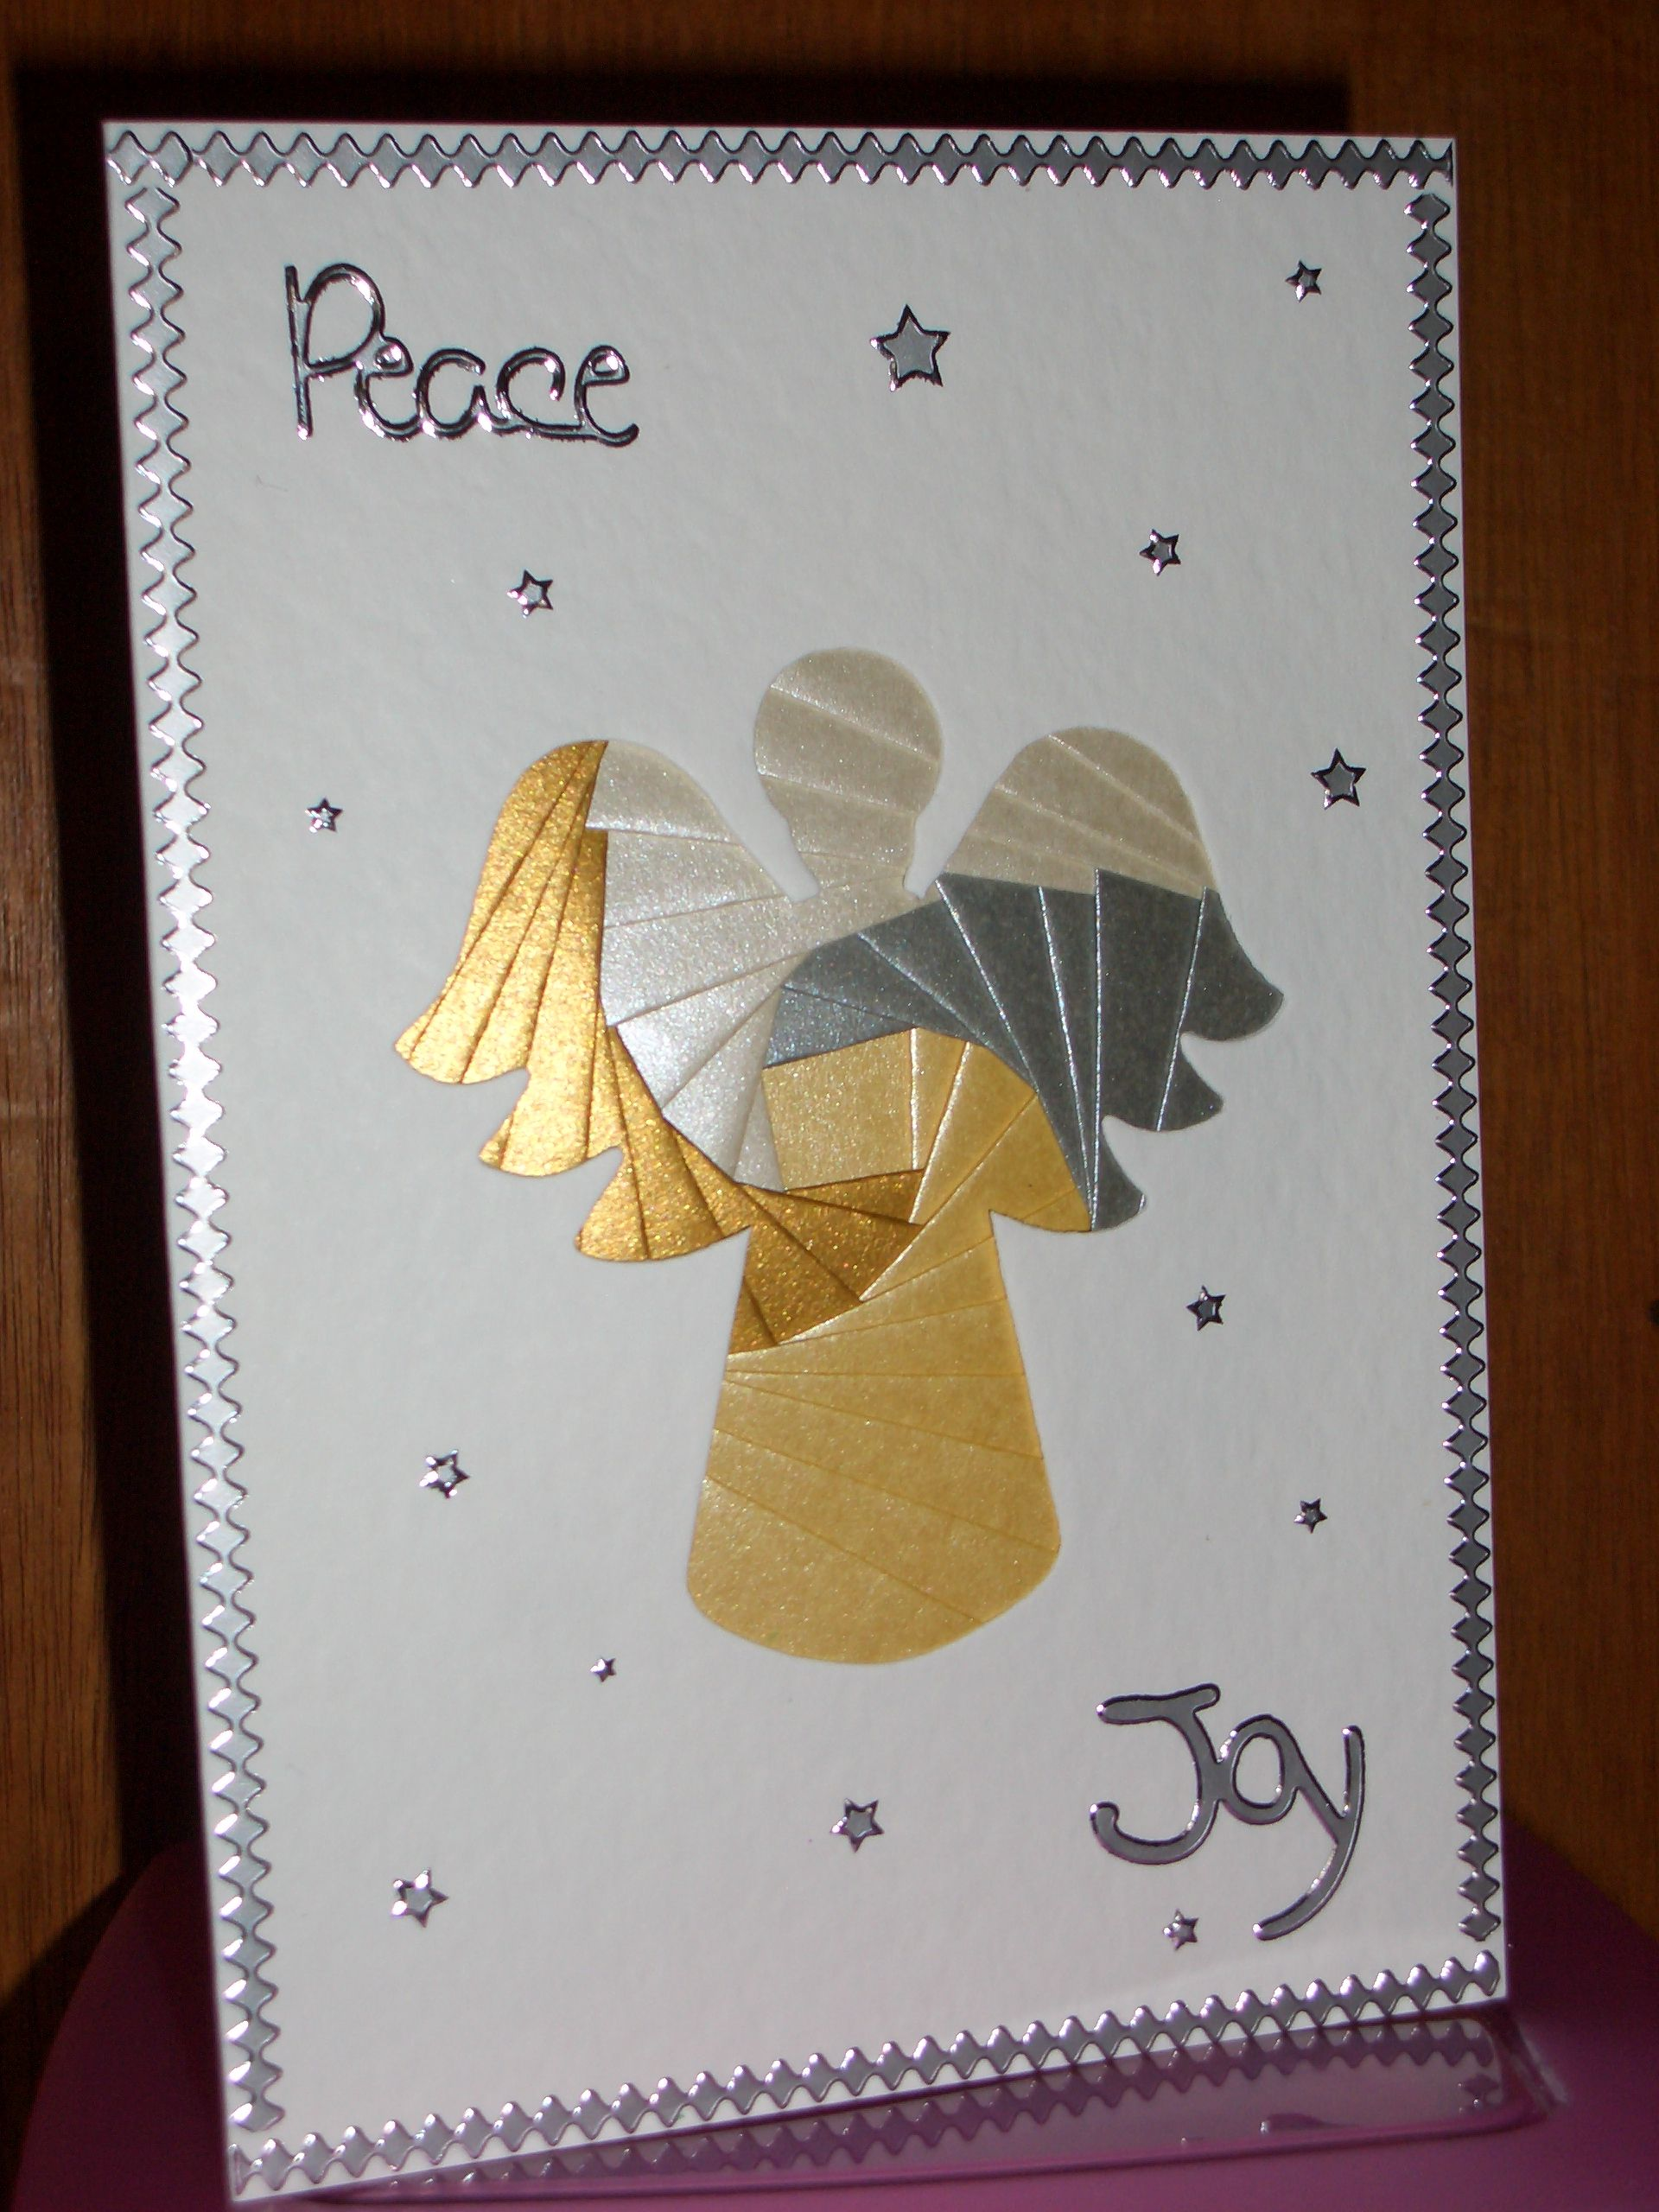 Angel Iris Fold Card - card blank & paper from Dee Craft, peel-offs from my own stash.